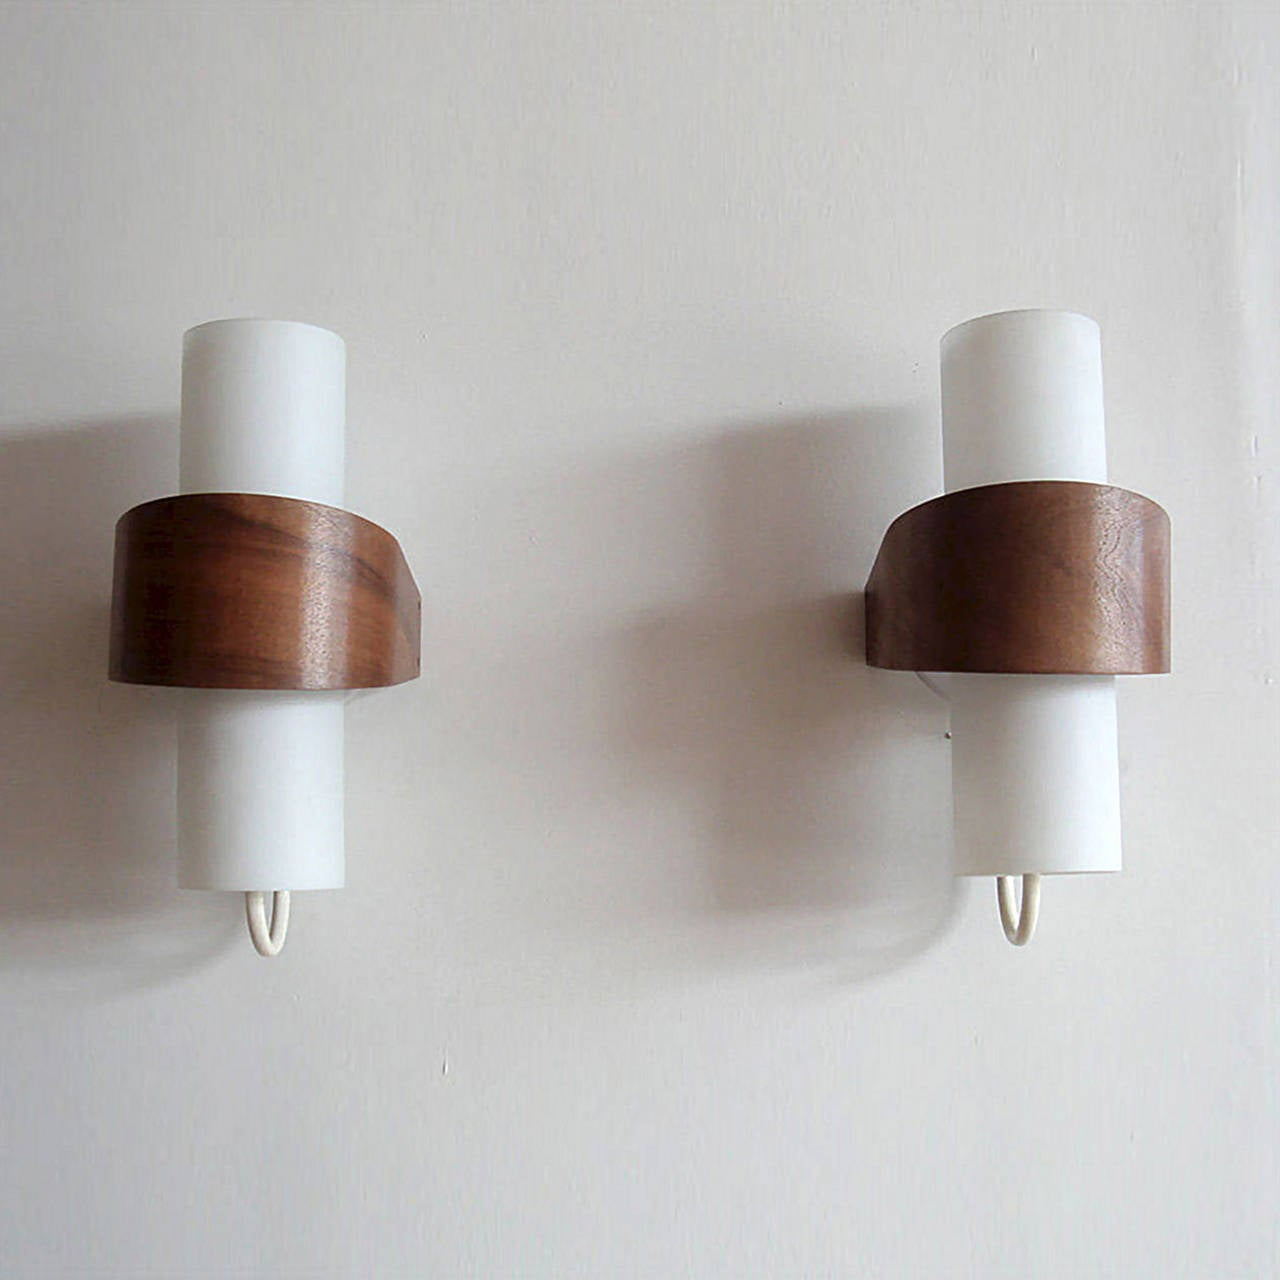 Philips Wall Lights For Home : Philips Wall Lights NX40 For Sale at 1stdibs